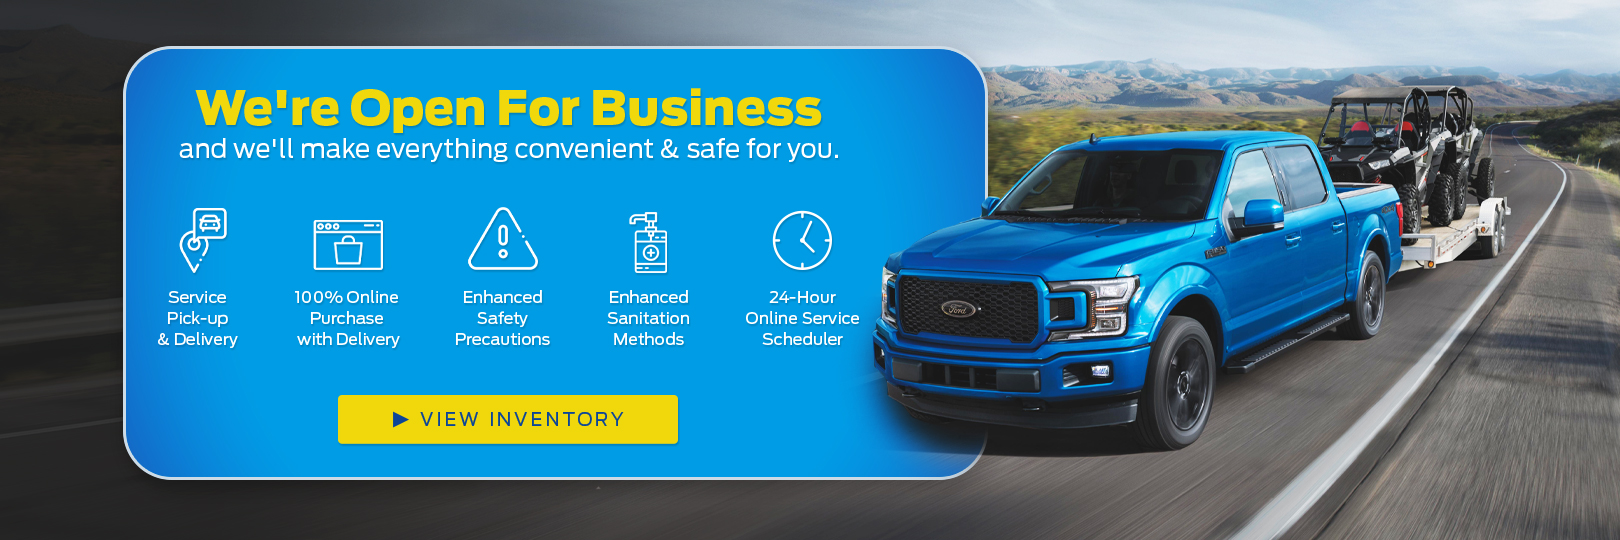 Mcfarland Ford Ford Dealership In Exeter Nh